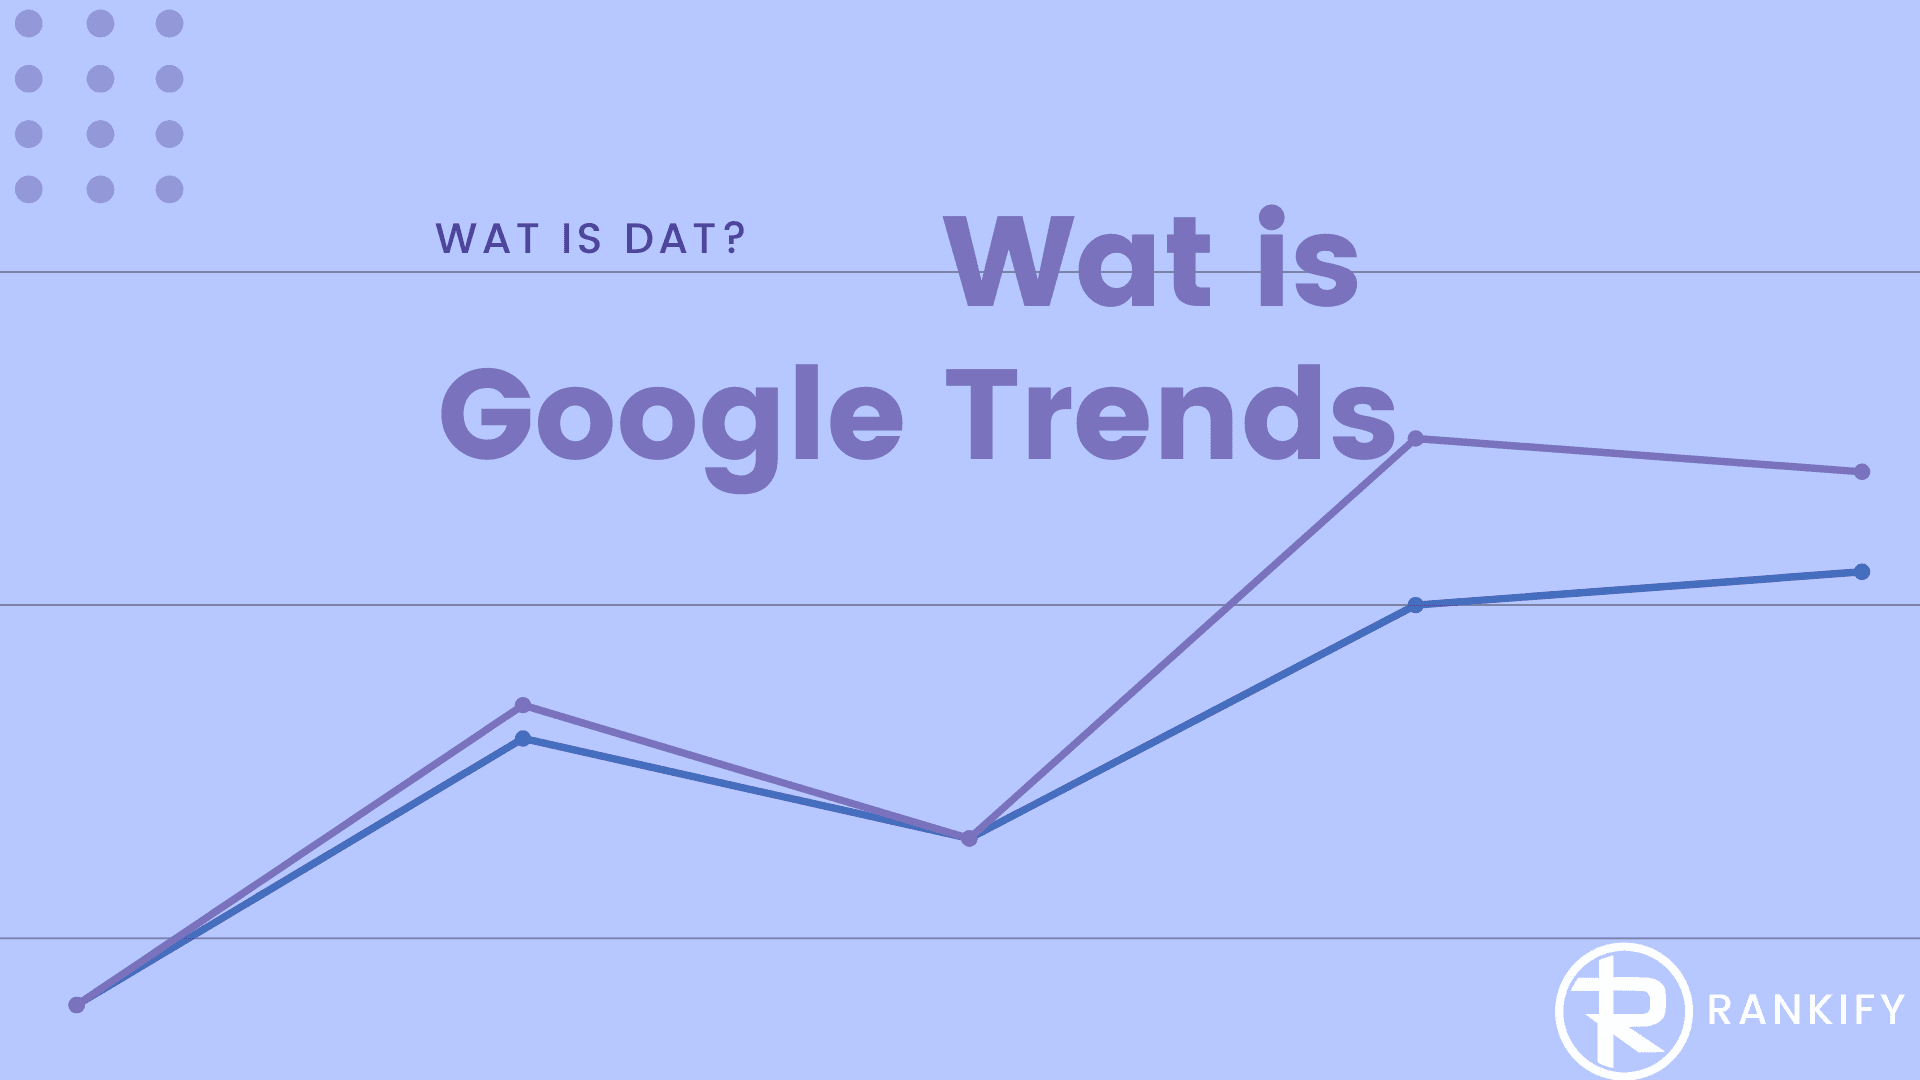 wat is google trends